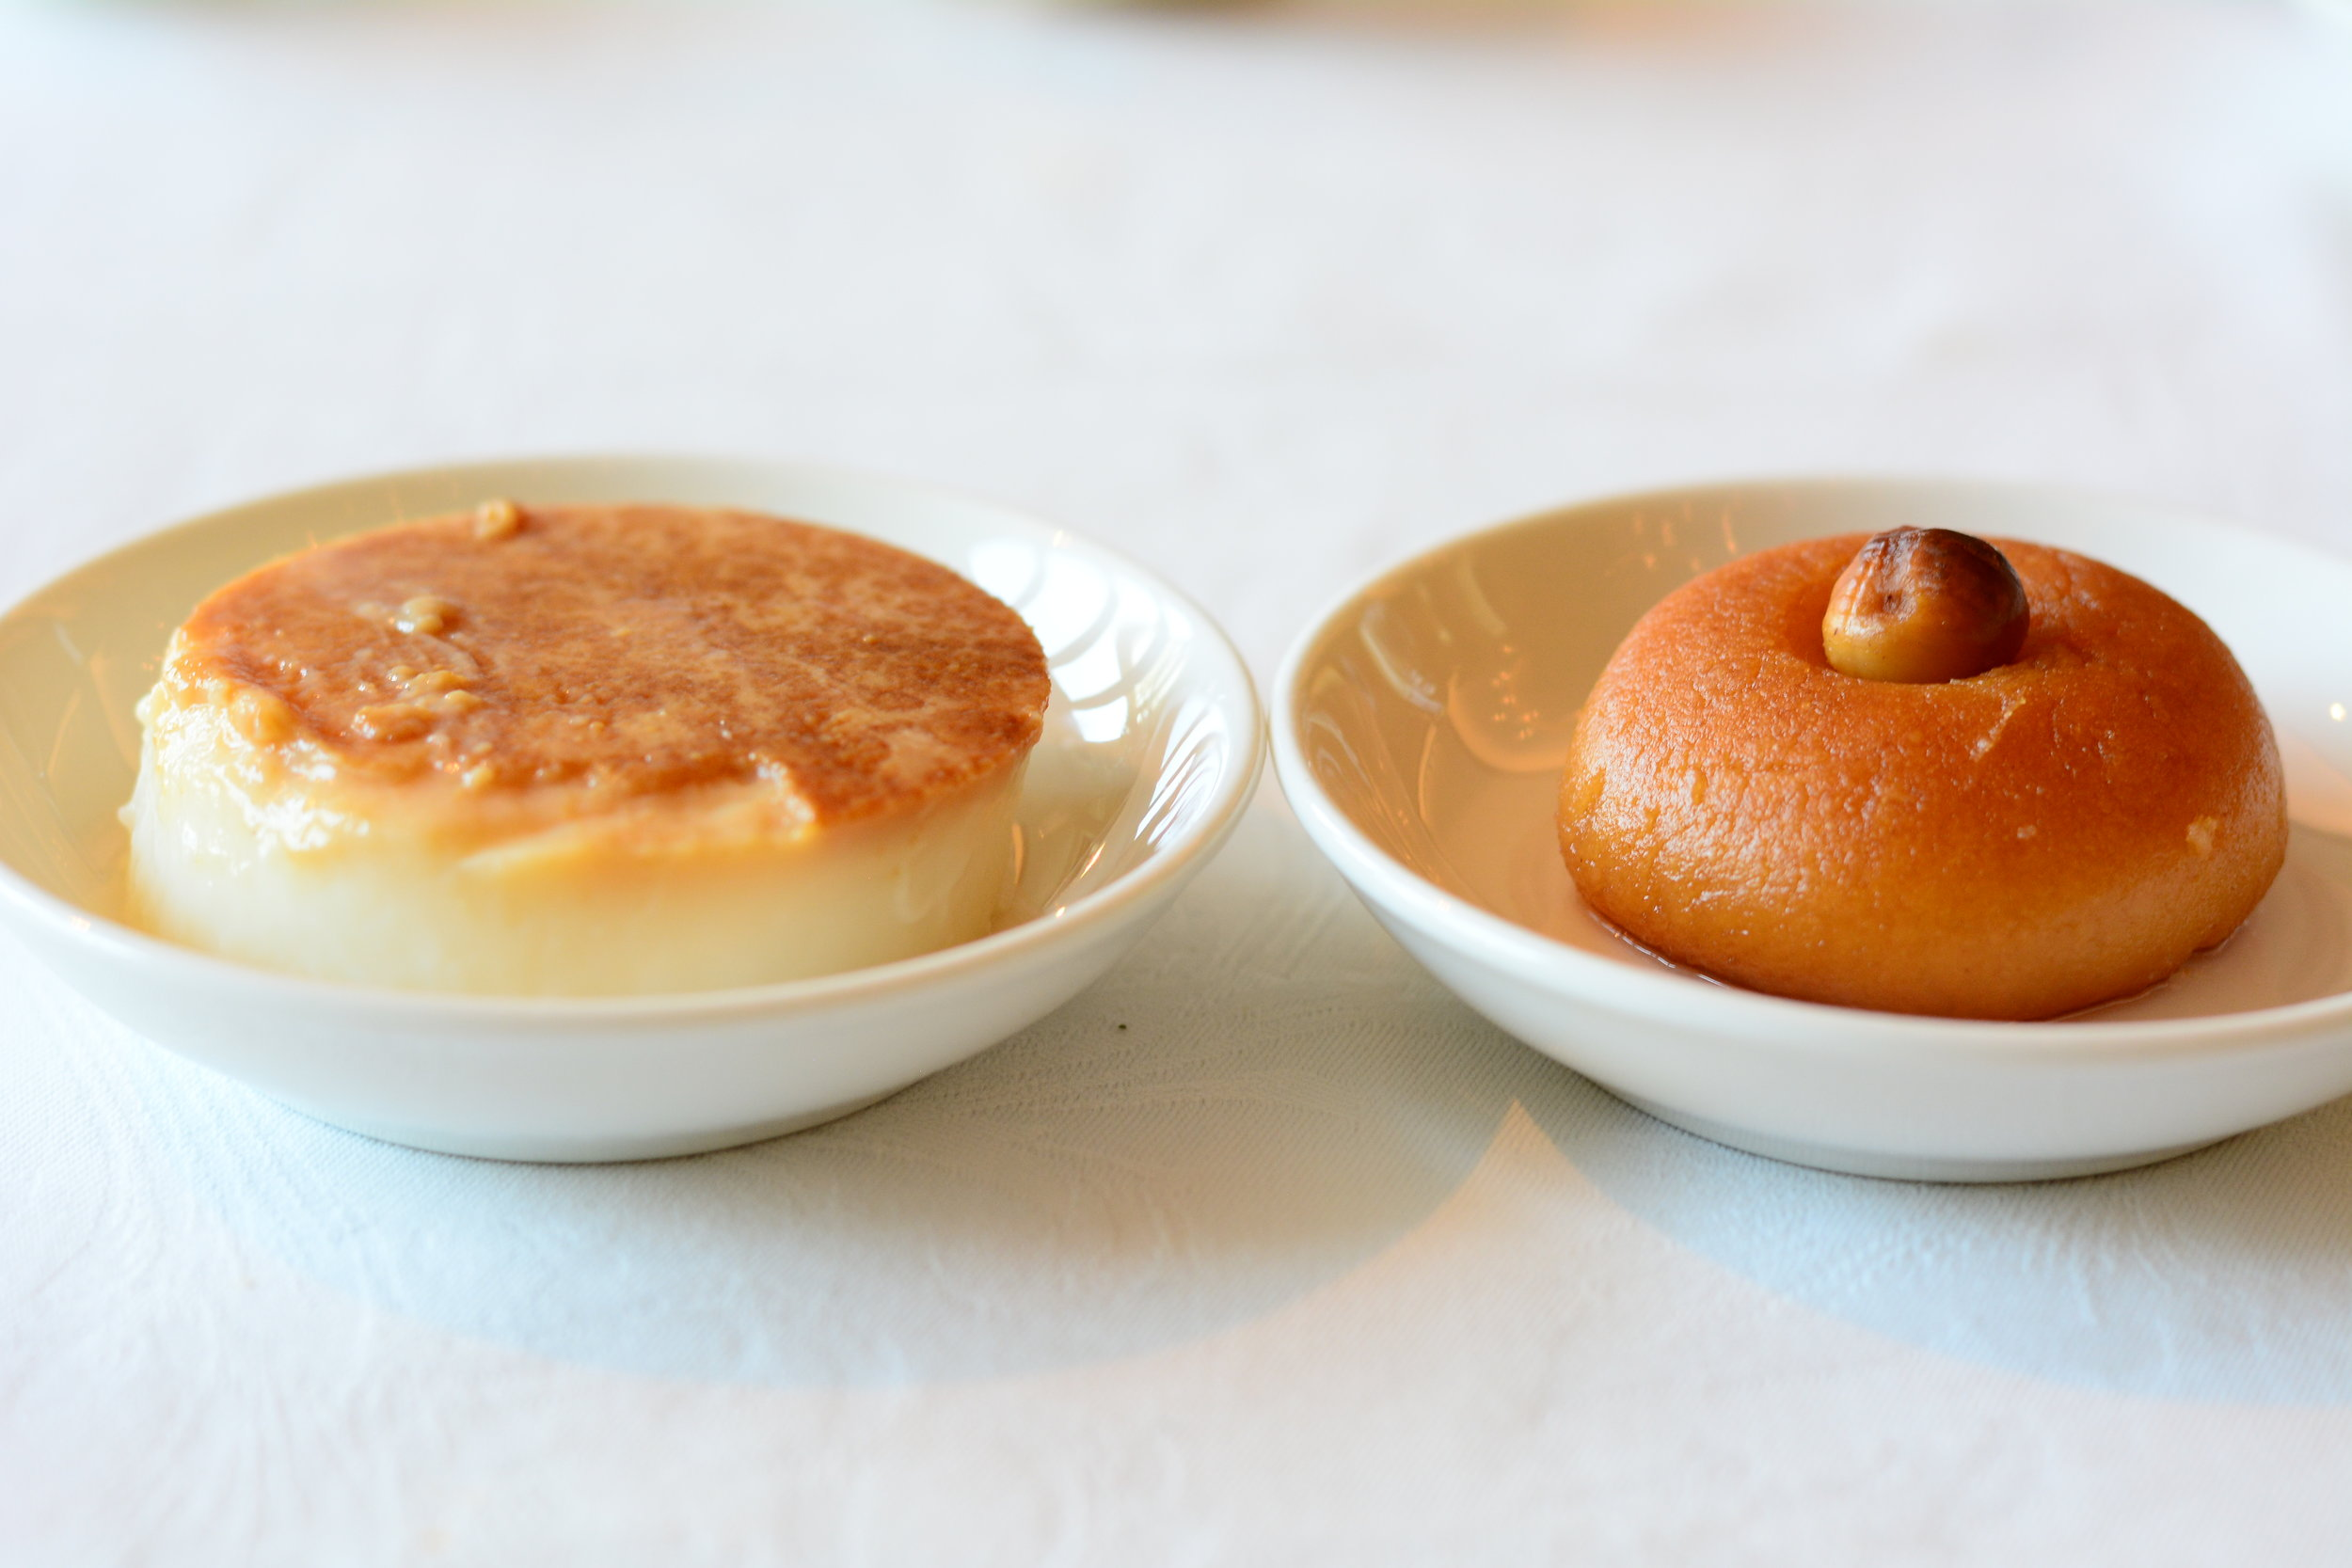 Enigma - Rice Pudding & Semolina Cookie in Syrup (Palazzo Versace Dubai)